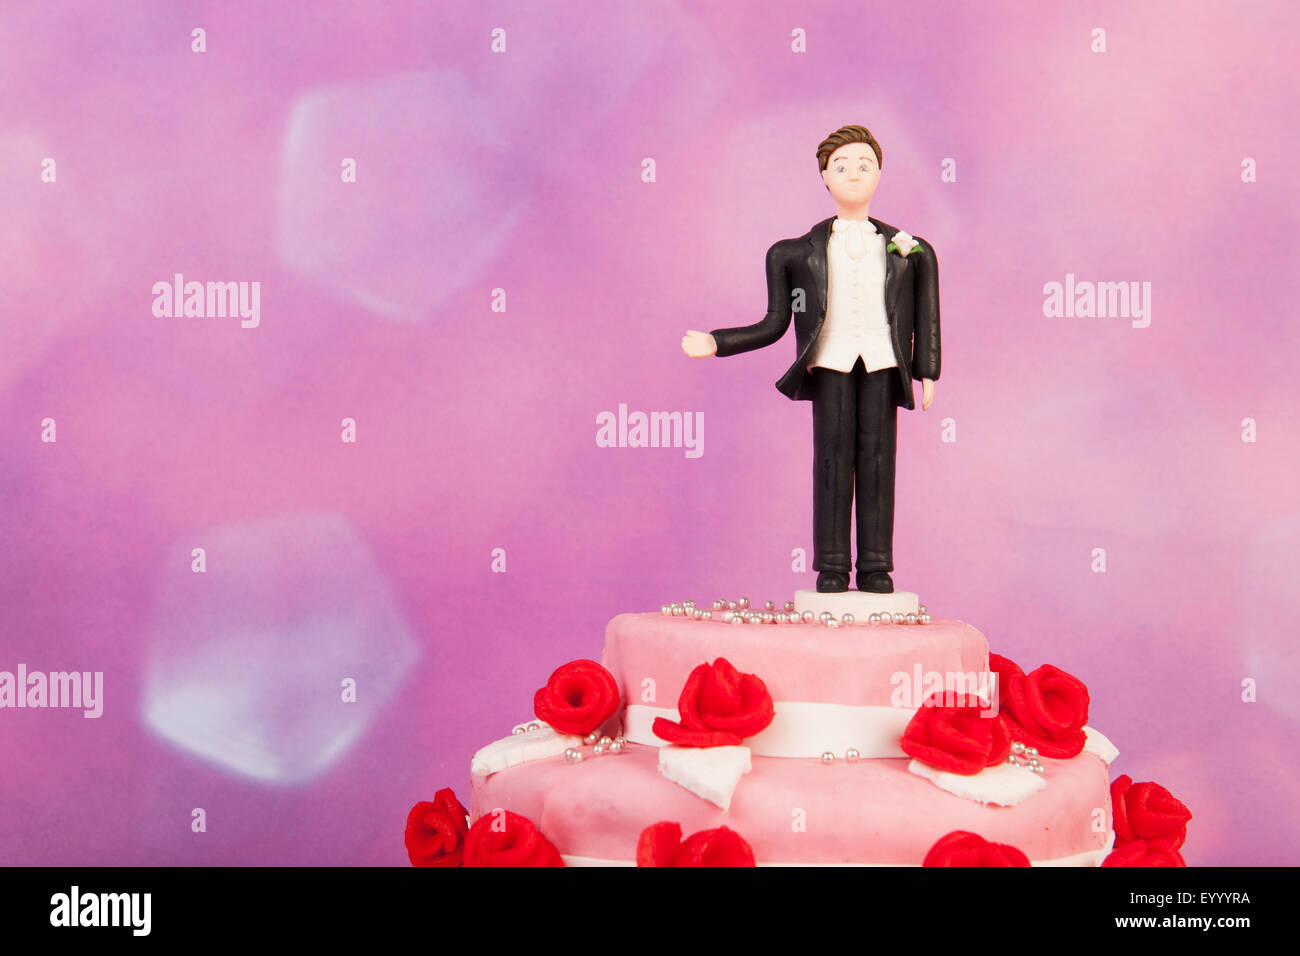 Division Cake Stock Photos & Division Cake Stock Images - Alamy